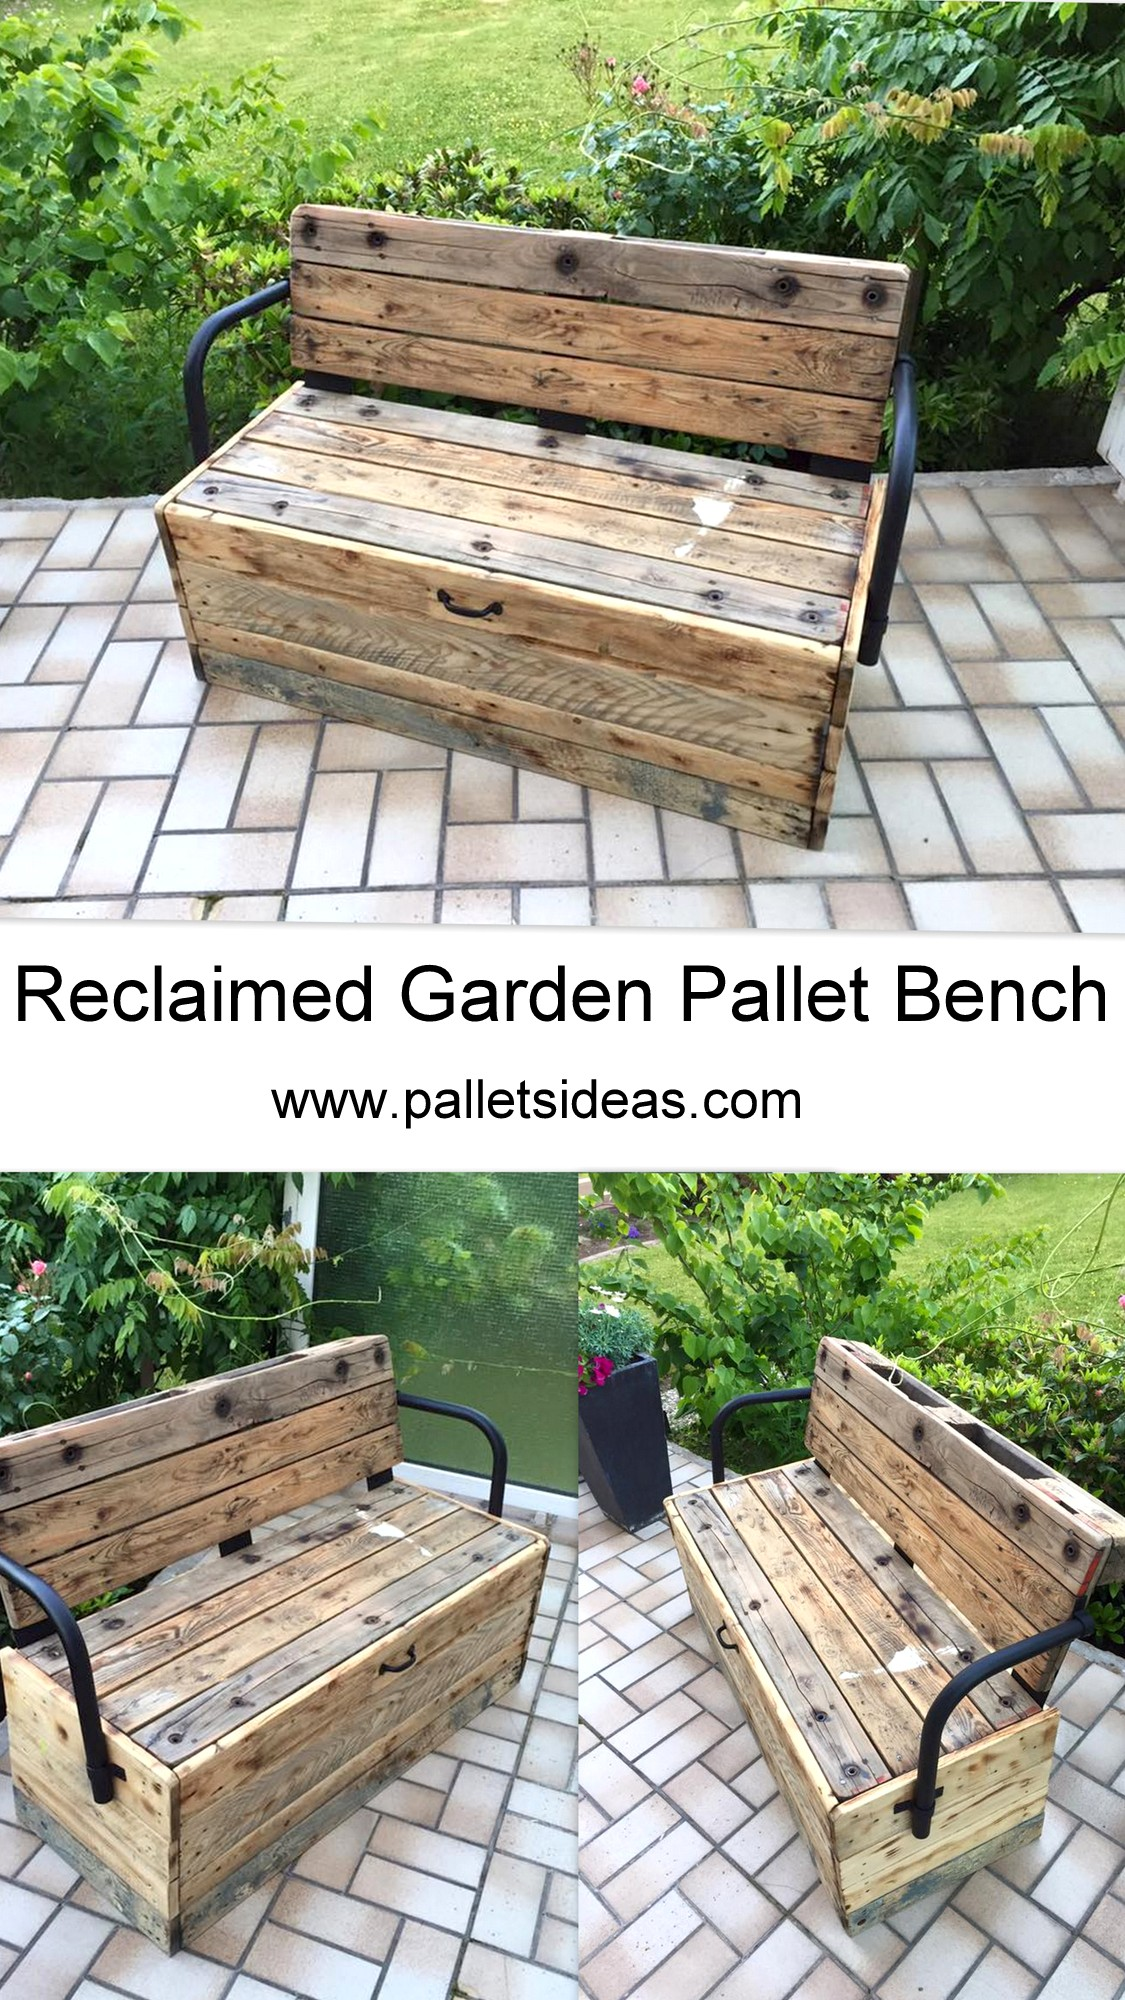 Reclaimed Garden Pallet Bench